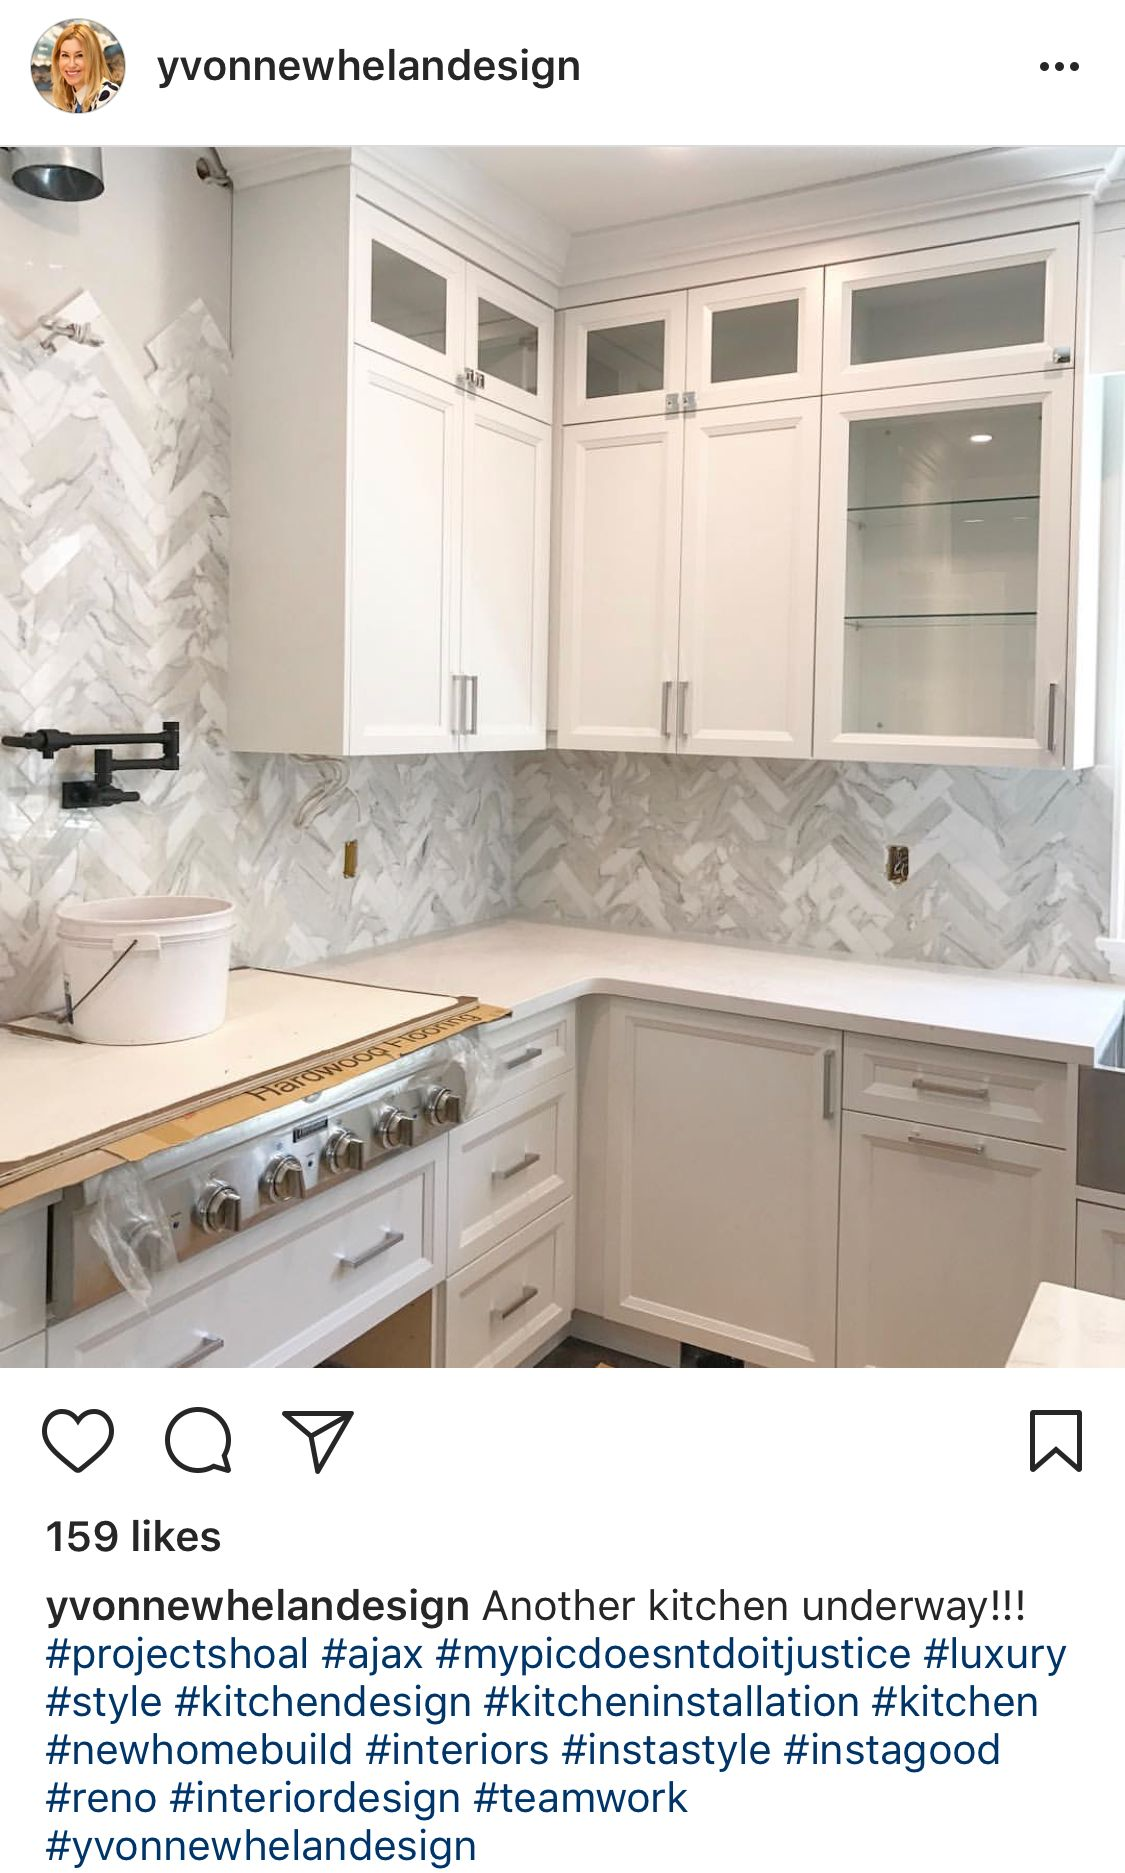 I like using the marble tile to create an overall marble